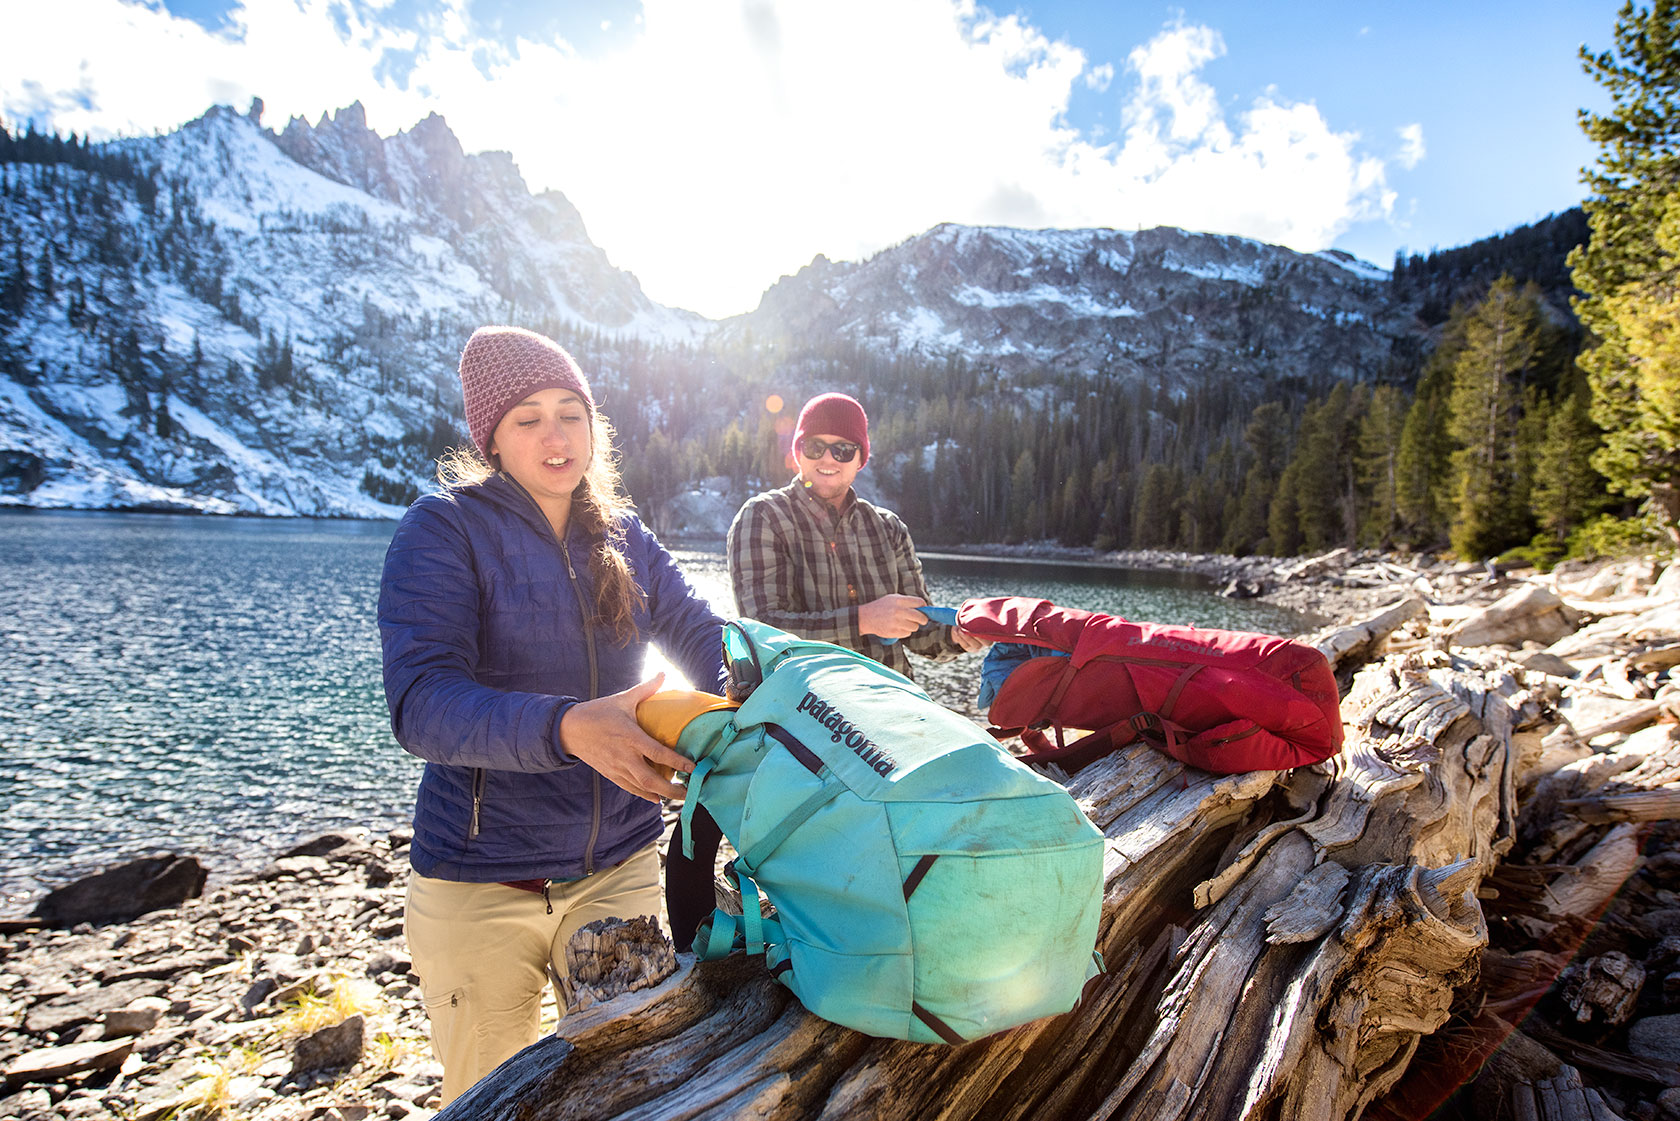 austin-trigg-patagonia-sawtooth-hiking-bench-lake-sunset-sun-flare-backpacks-advenure-wilderness-forest-idaho-outside-lifestyle-day-fall-weather-mountains.jpg